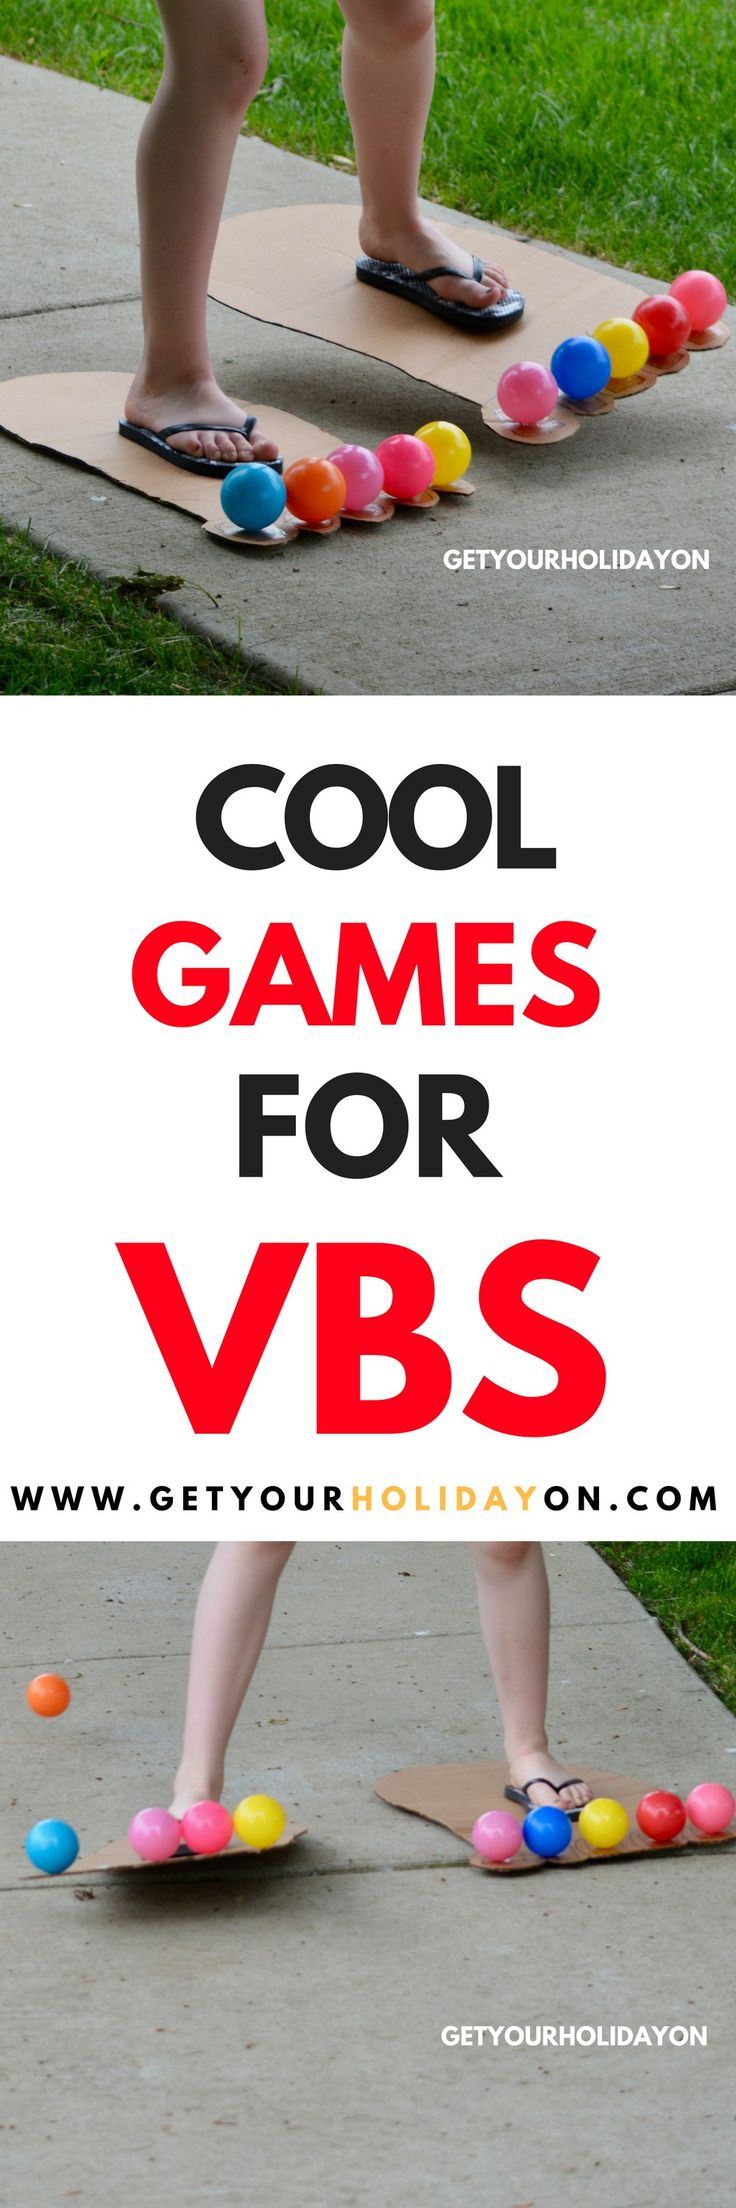 Cool Games for VBS Sonntagsschule spiele, Schulspiele